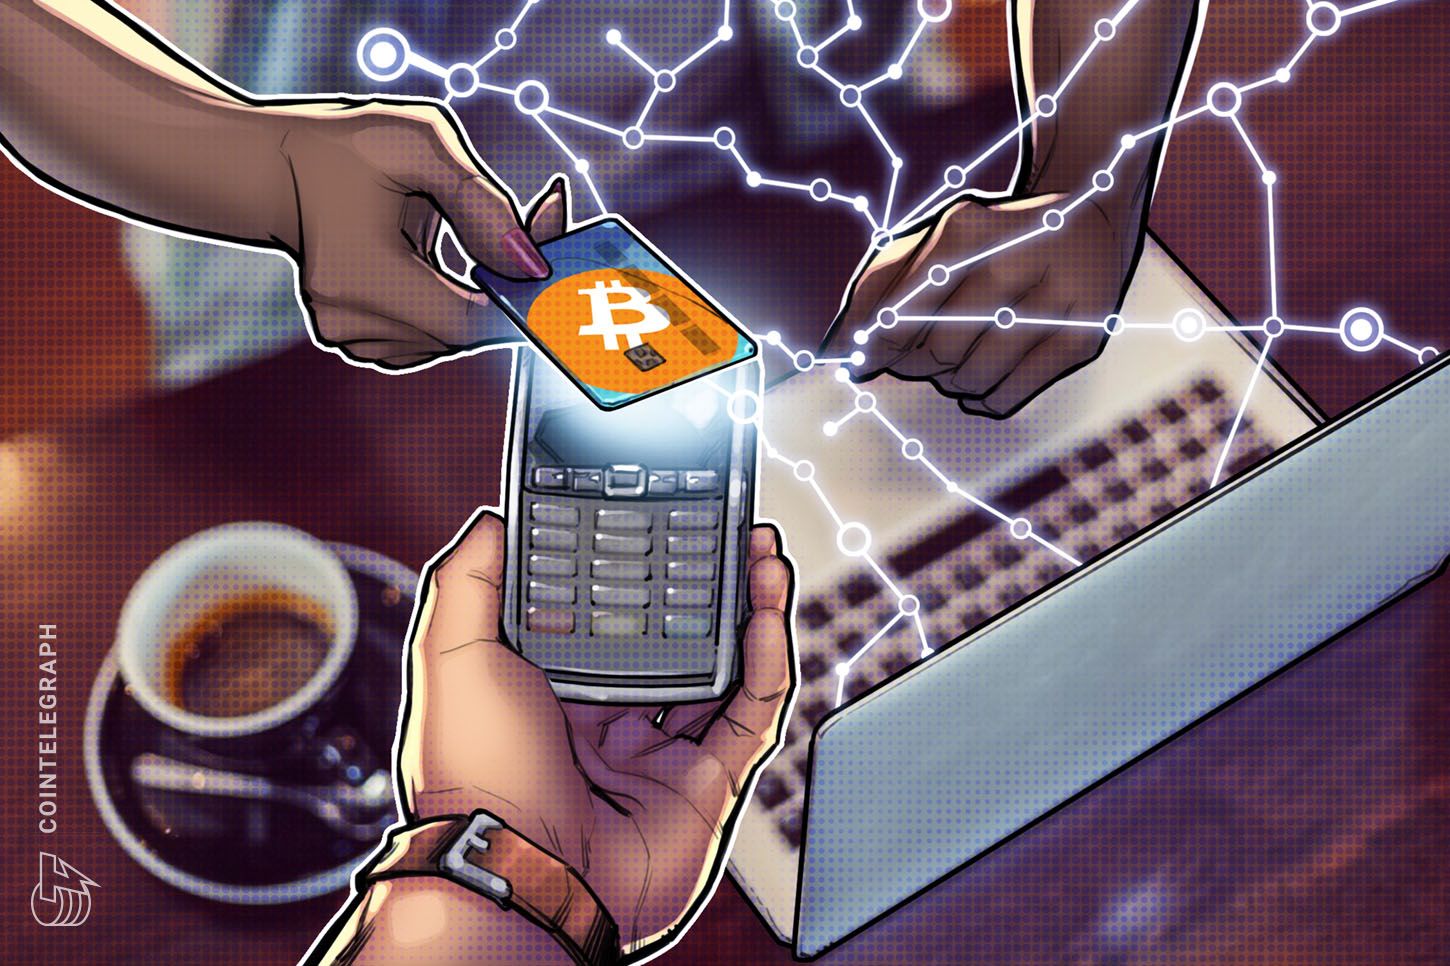 Merchants accepting Bitcoin laud 'zero chargeback risks', says BitPay report